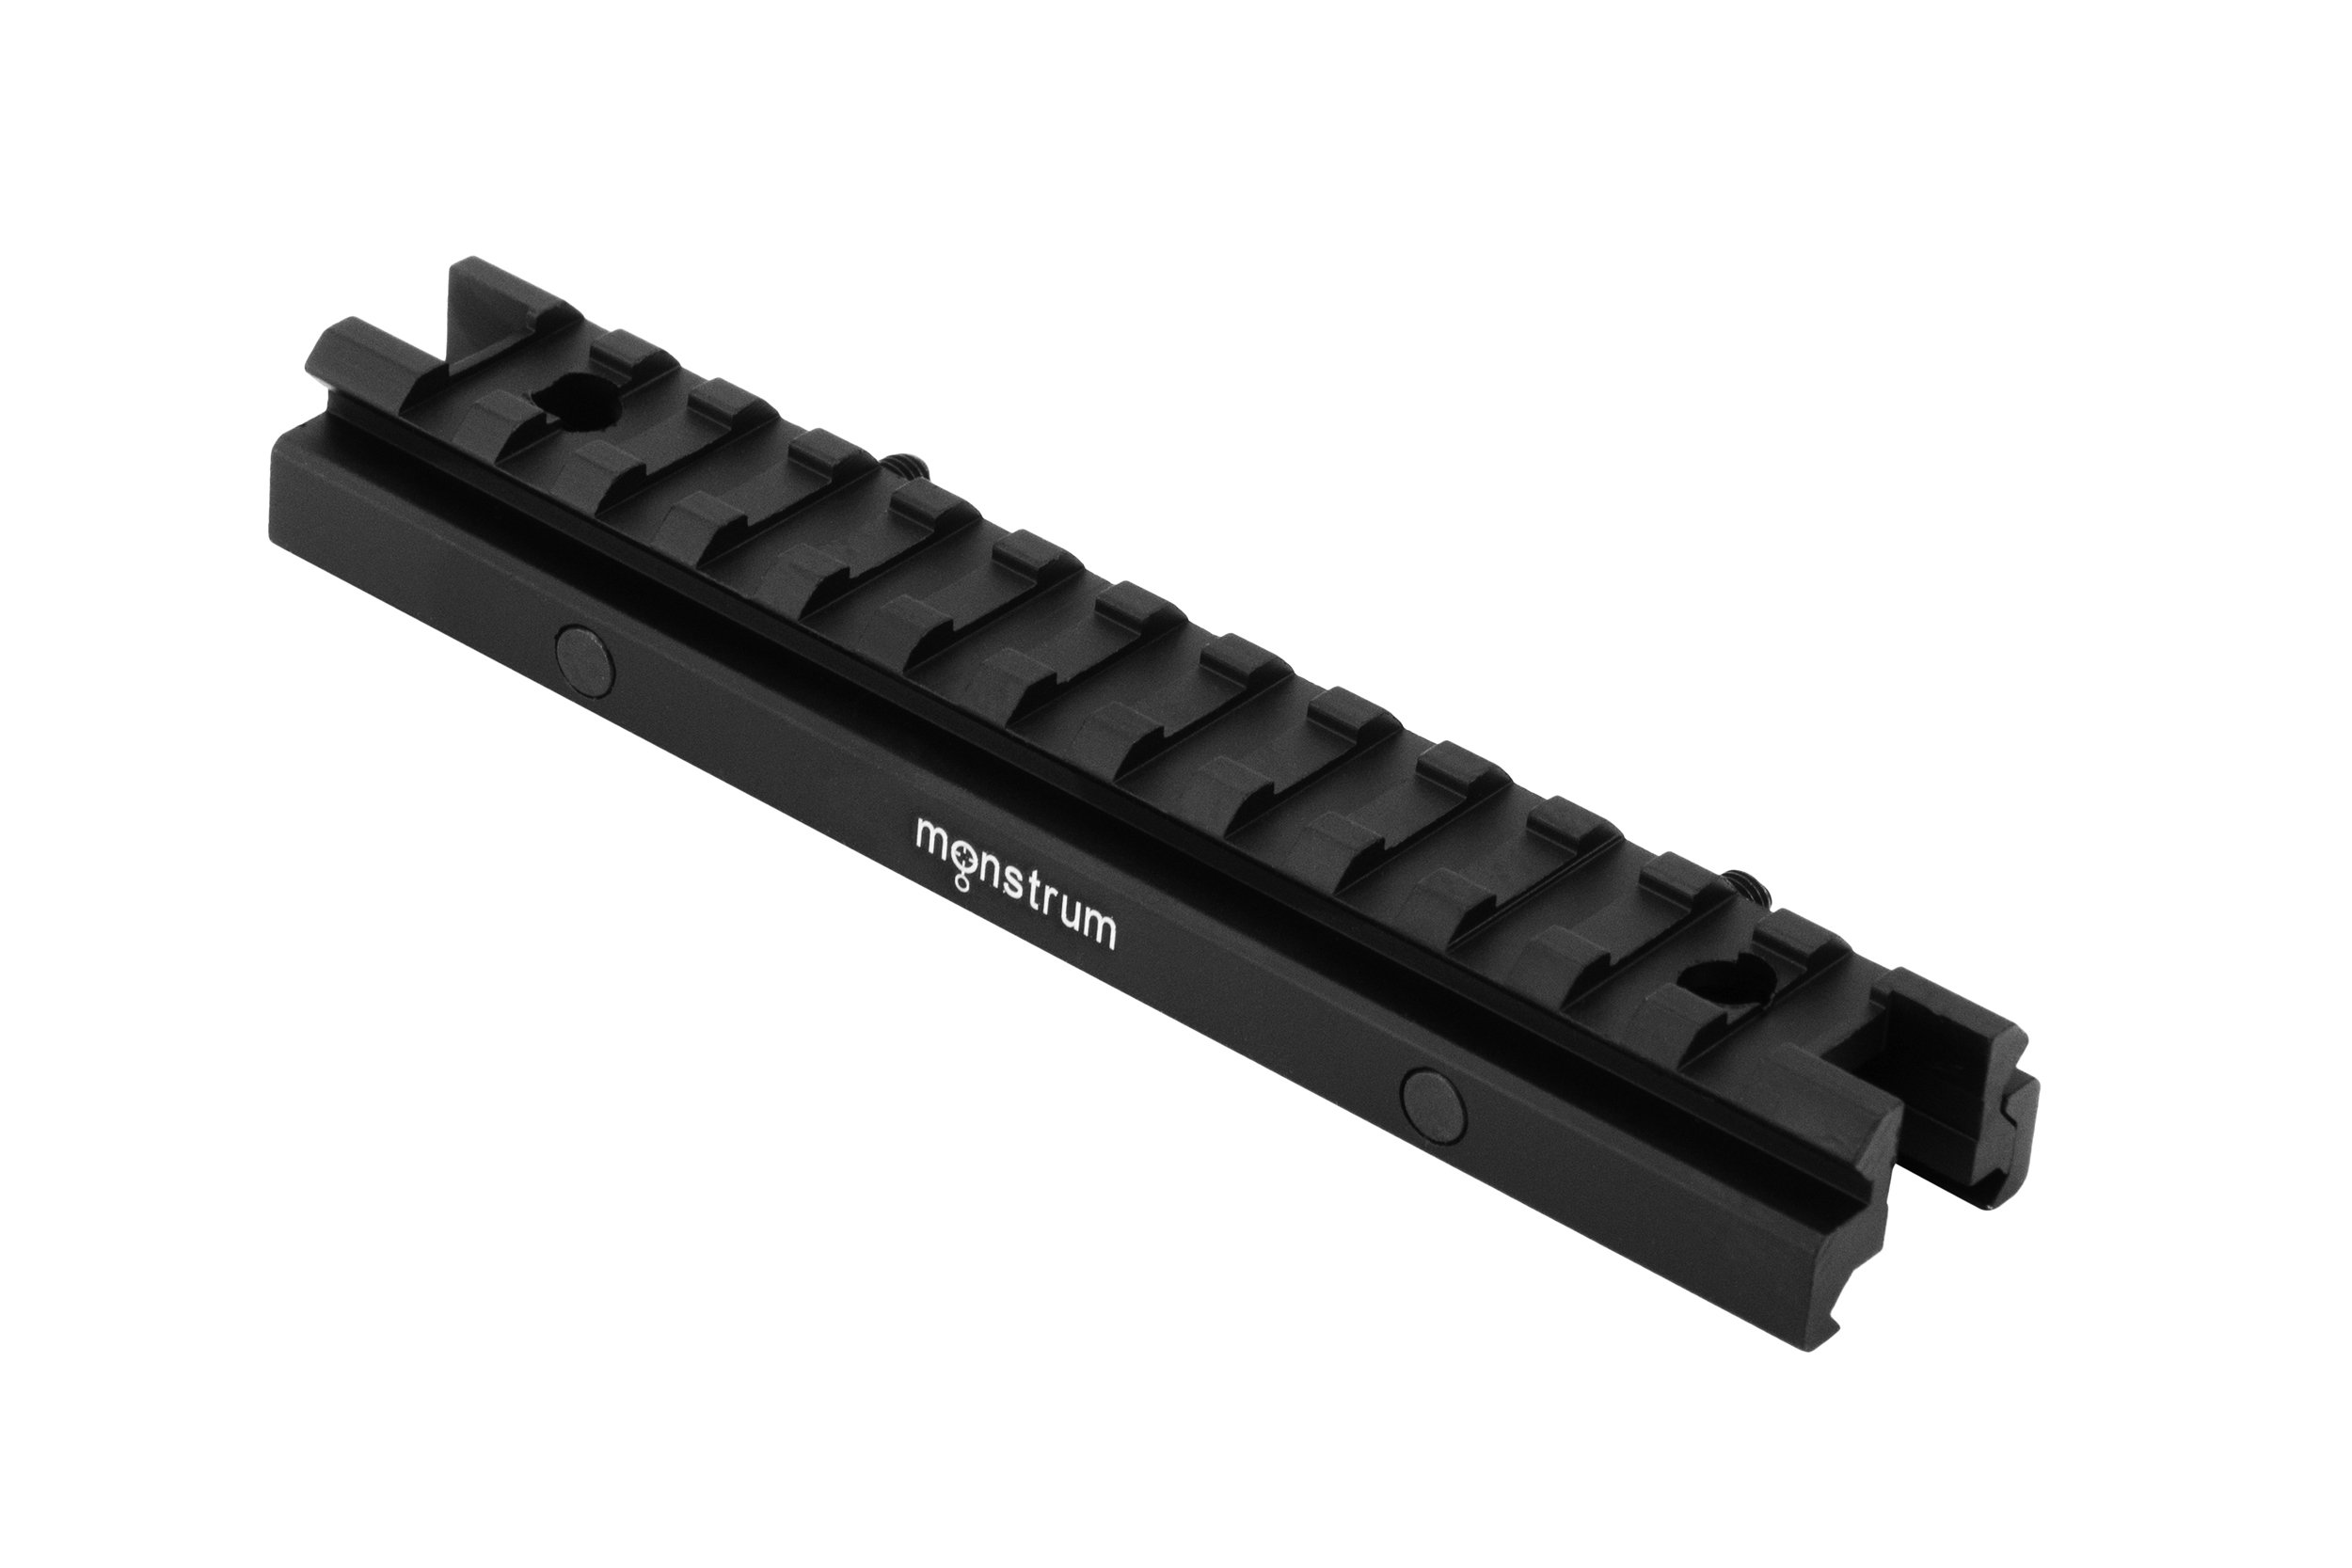 Monstrum Tactical Low Profile Picatinny Riser Mount (0.5'' H x 5.7'' L), for Scopes and Optics